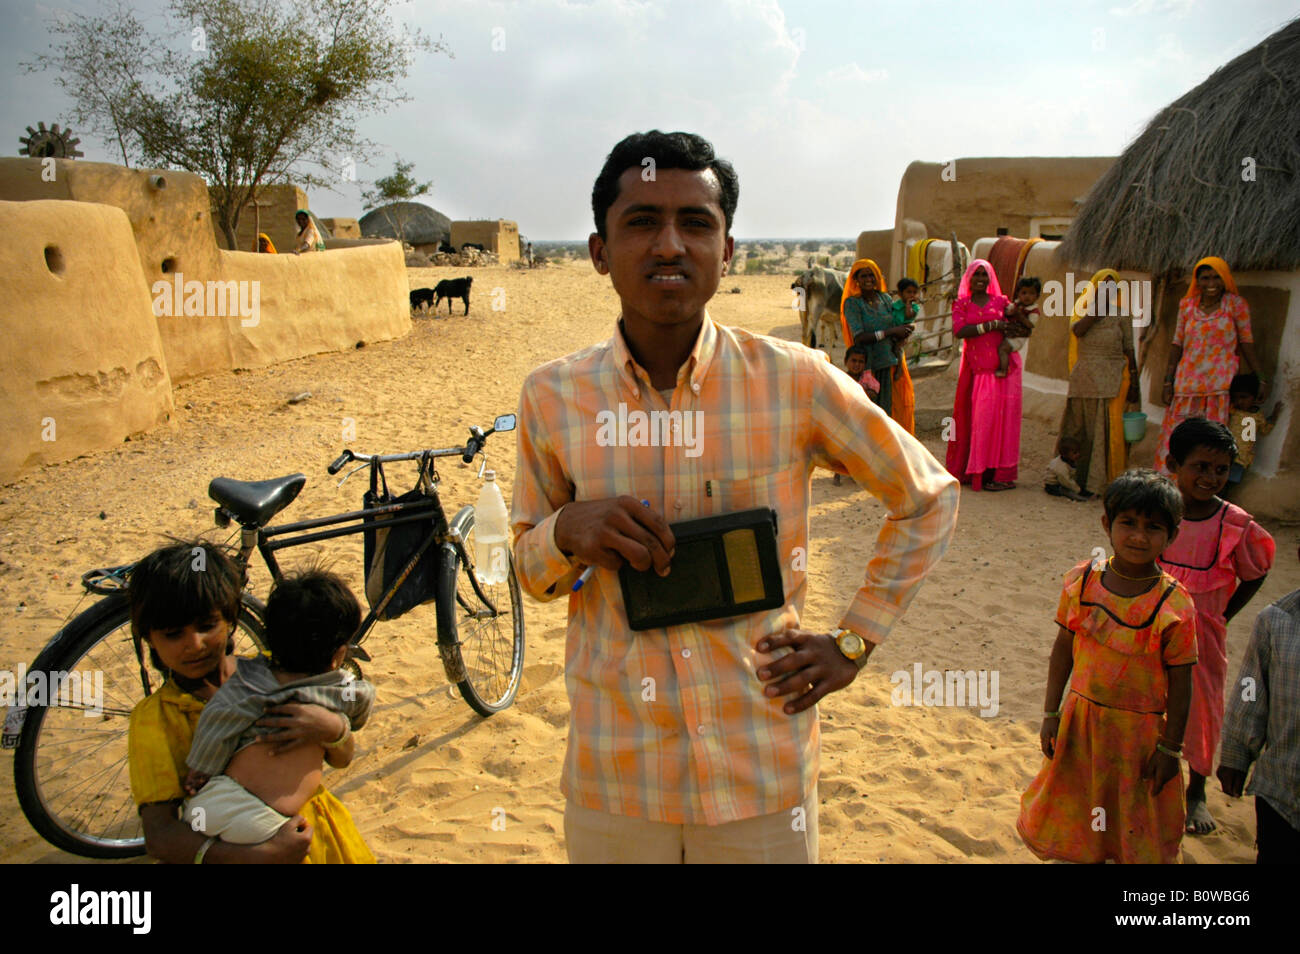 Young Indian man holding a radio standing in front of a bicycle among other people in a village in the Thar Desert - Stock Image